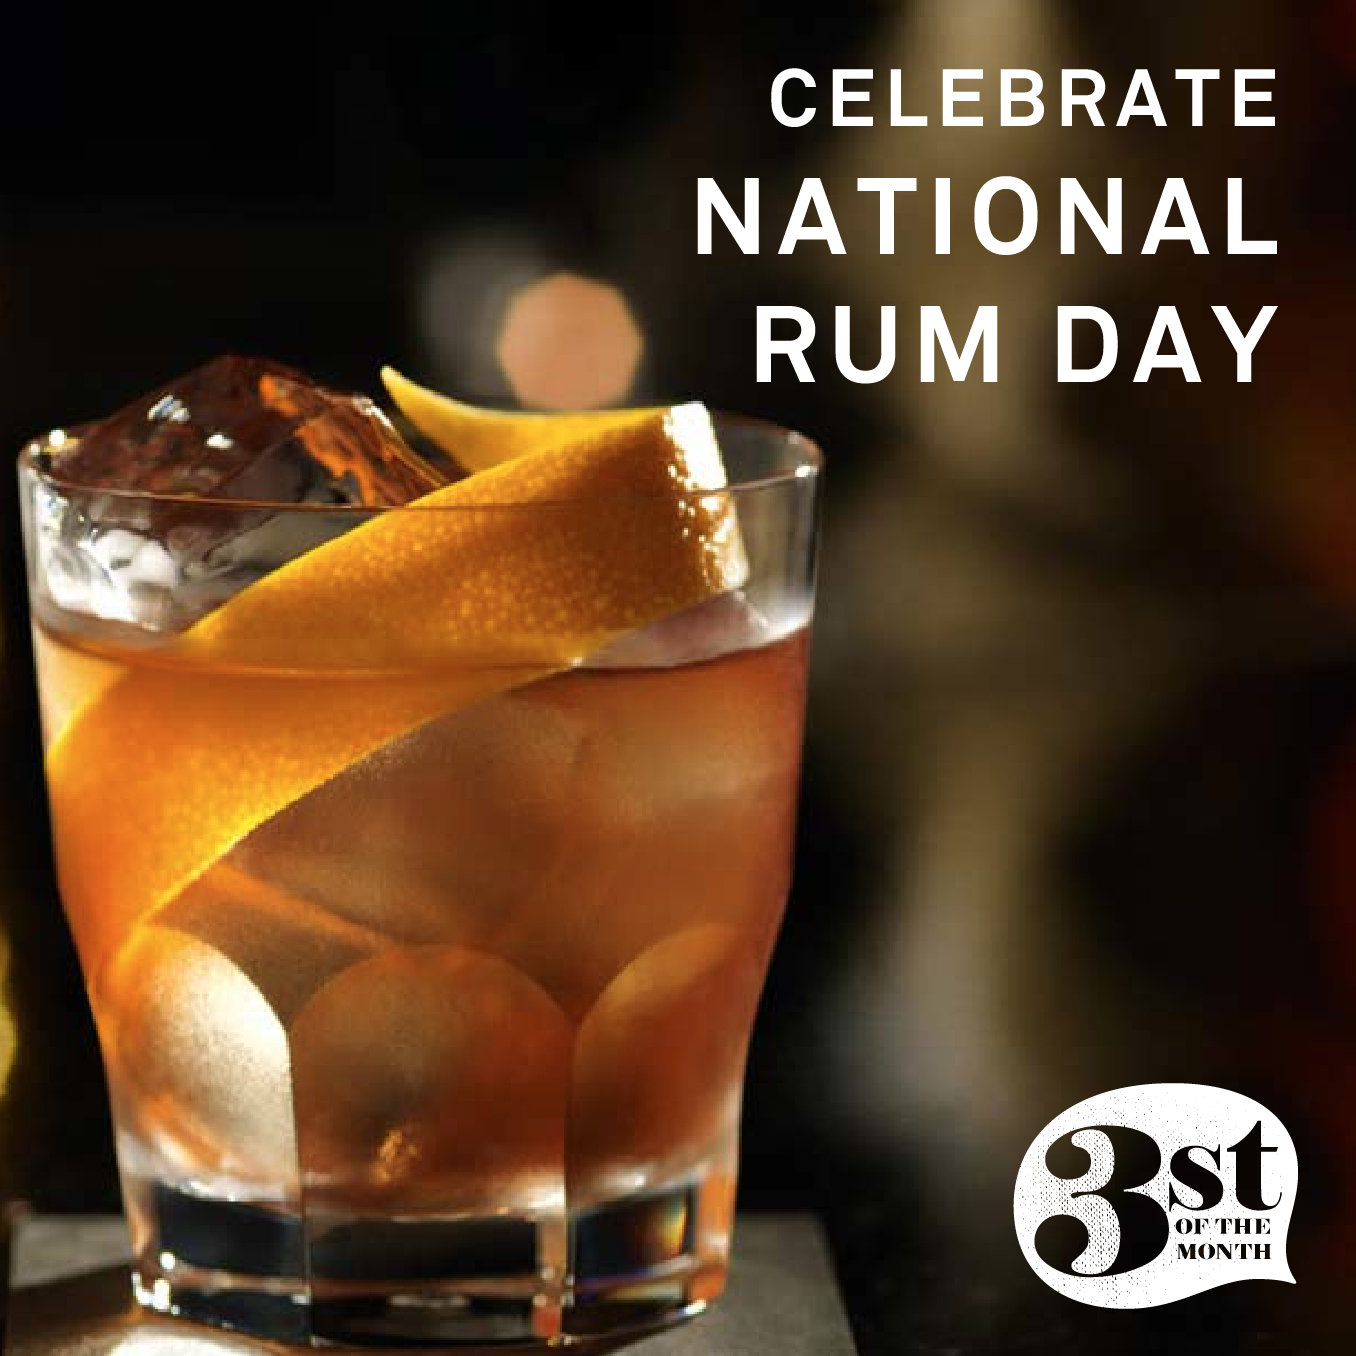 Celebrate National Rum Day!